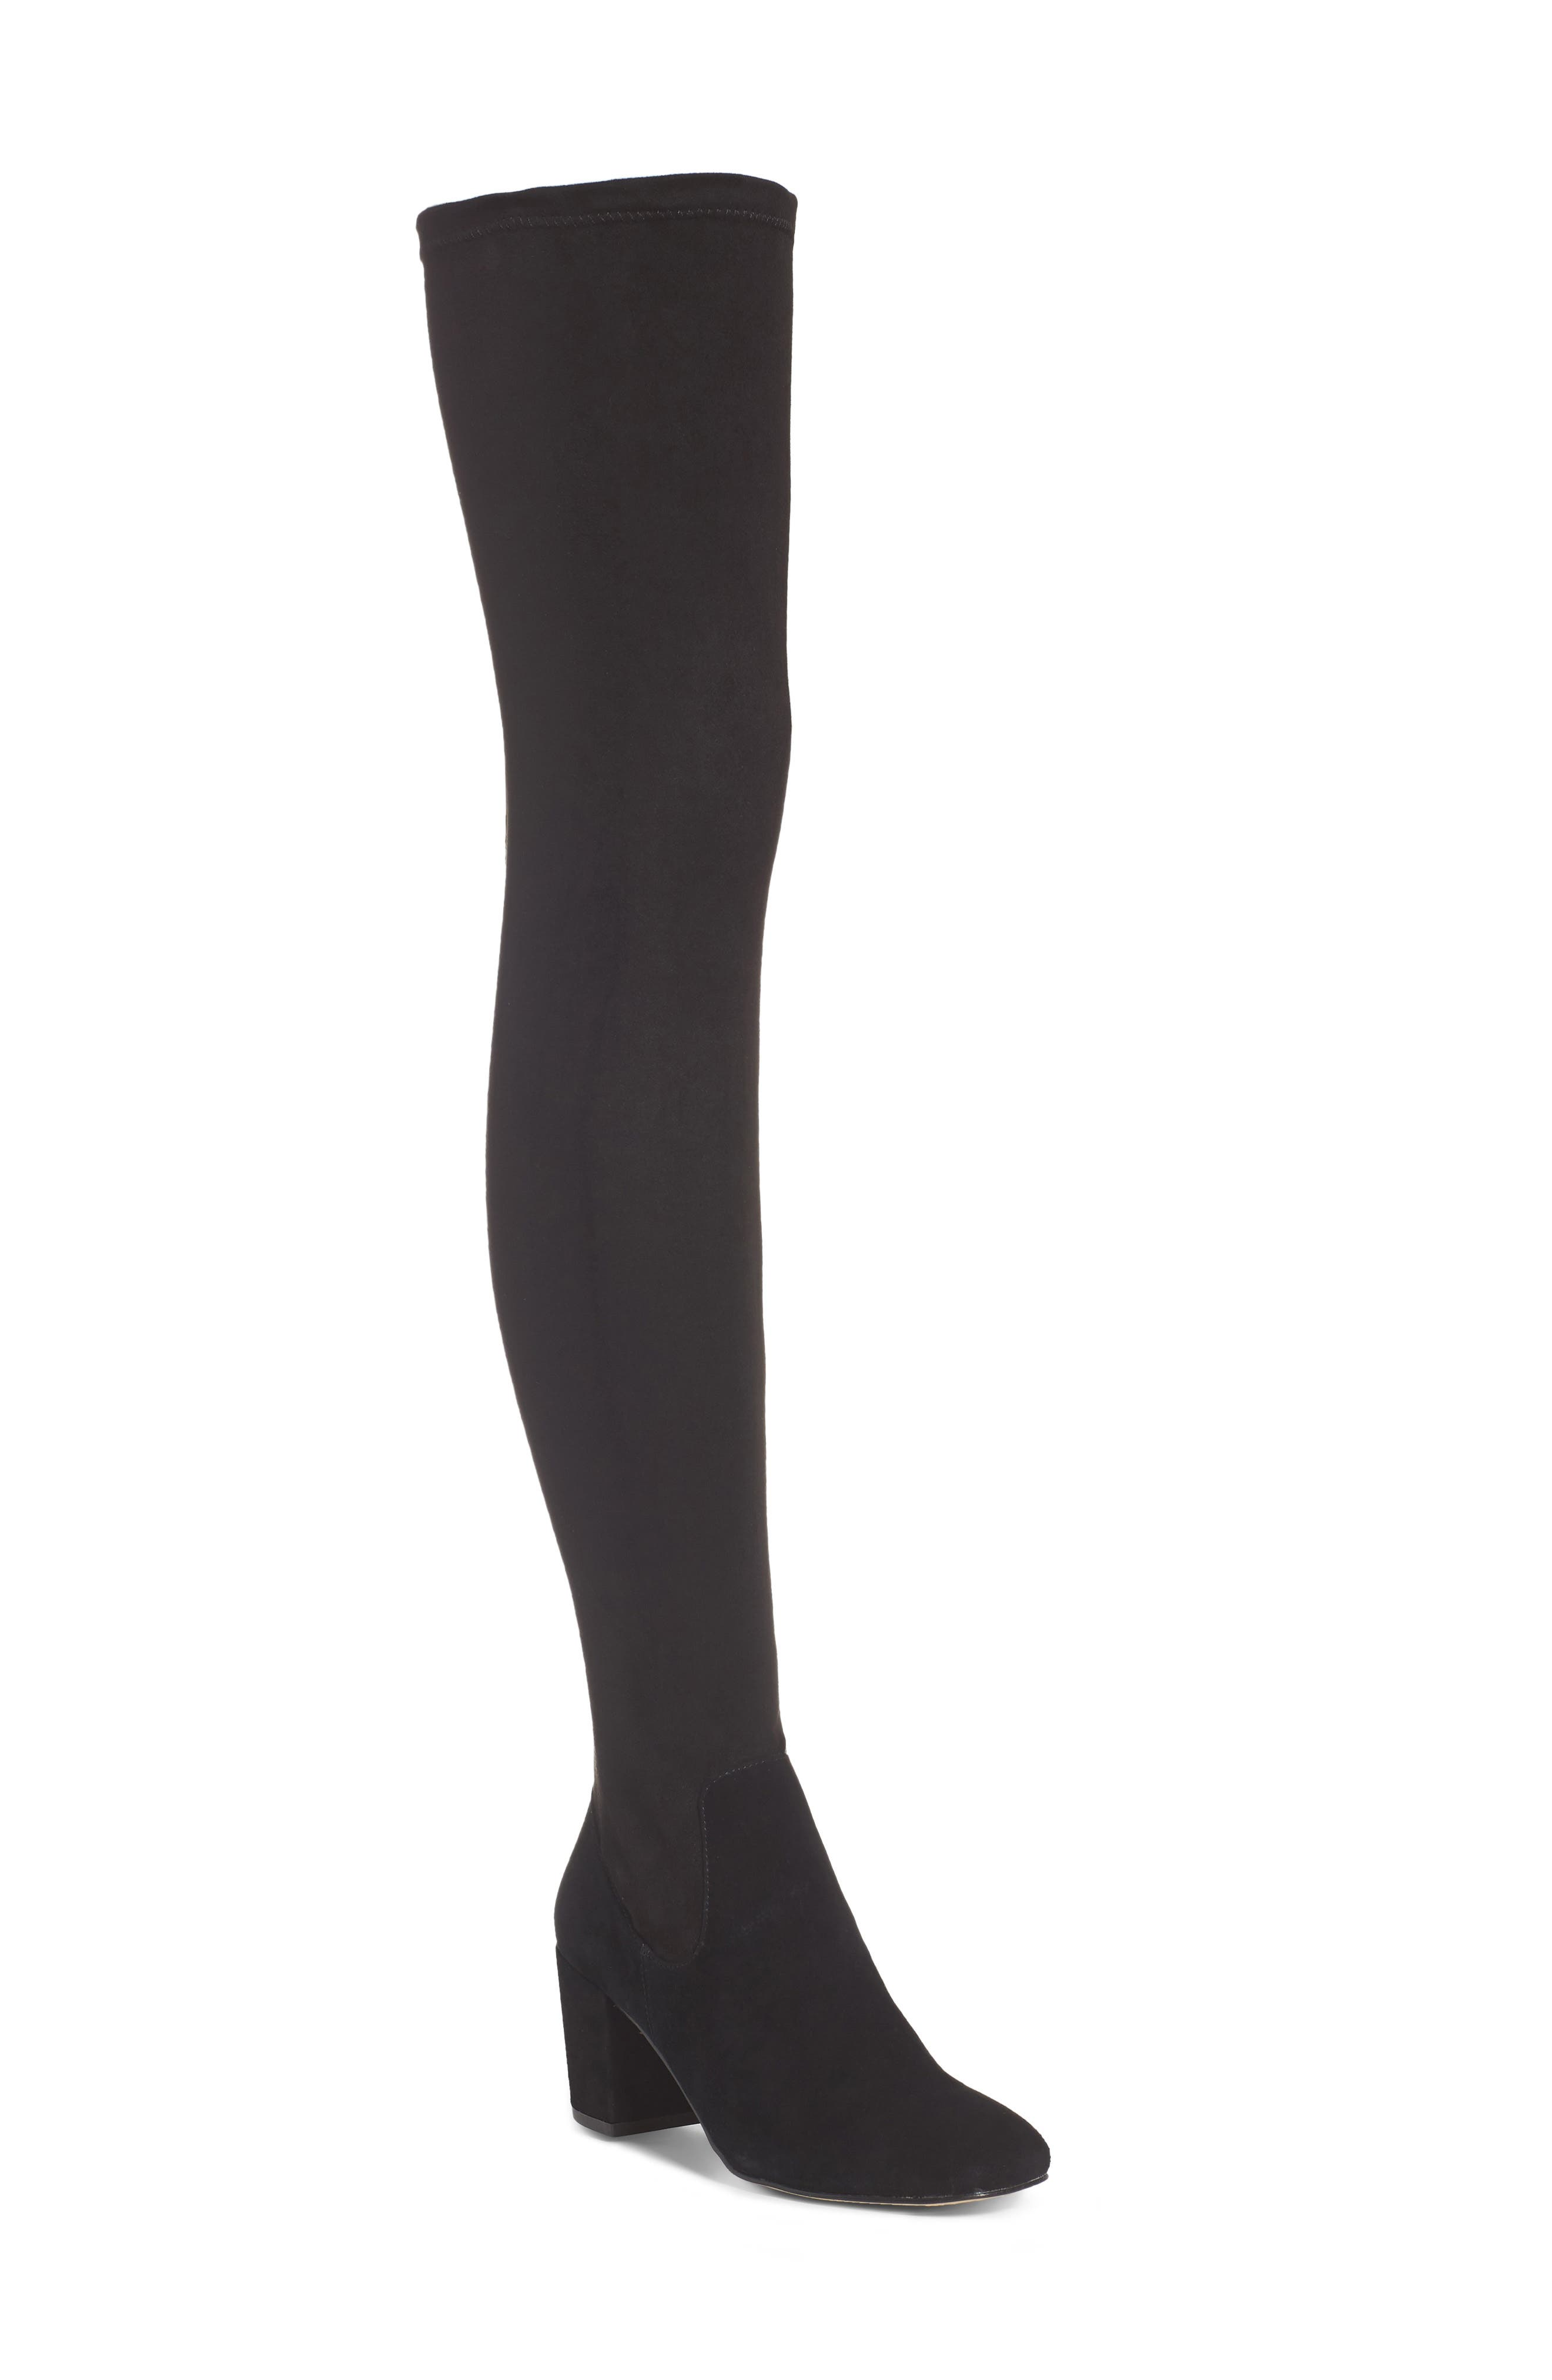 Alternate Image 1 Selected - M4D3 Sobrina Over the Knee Boot (Women)